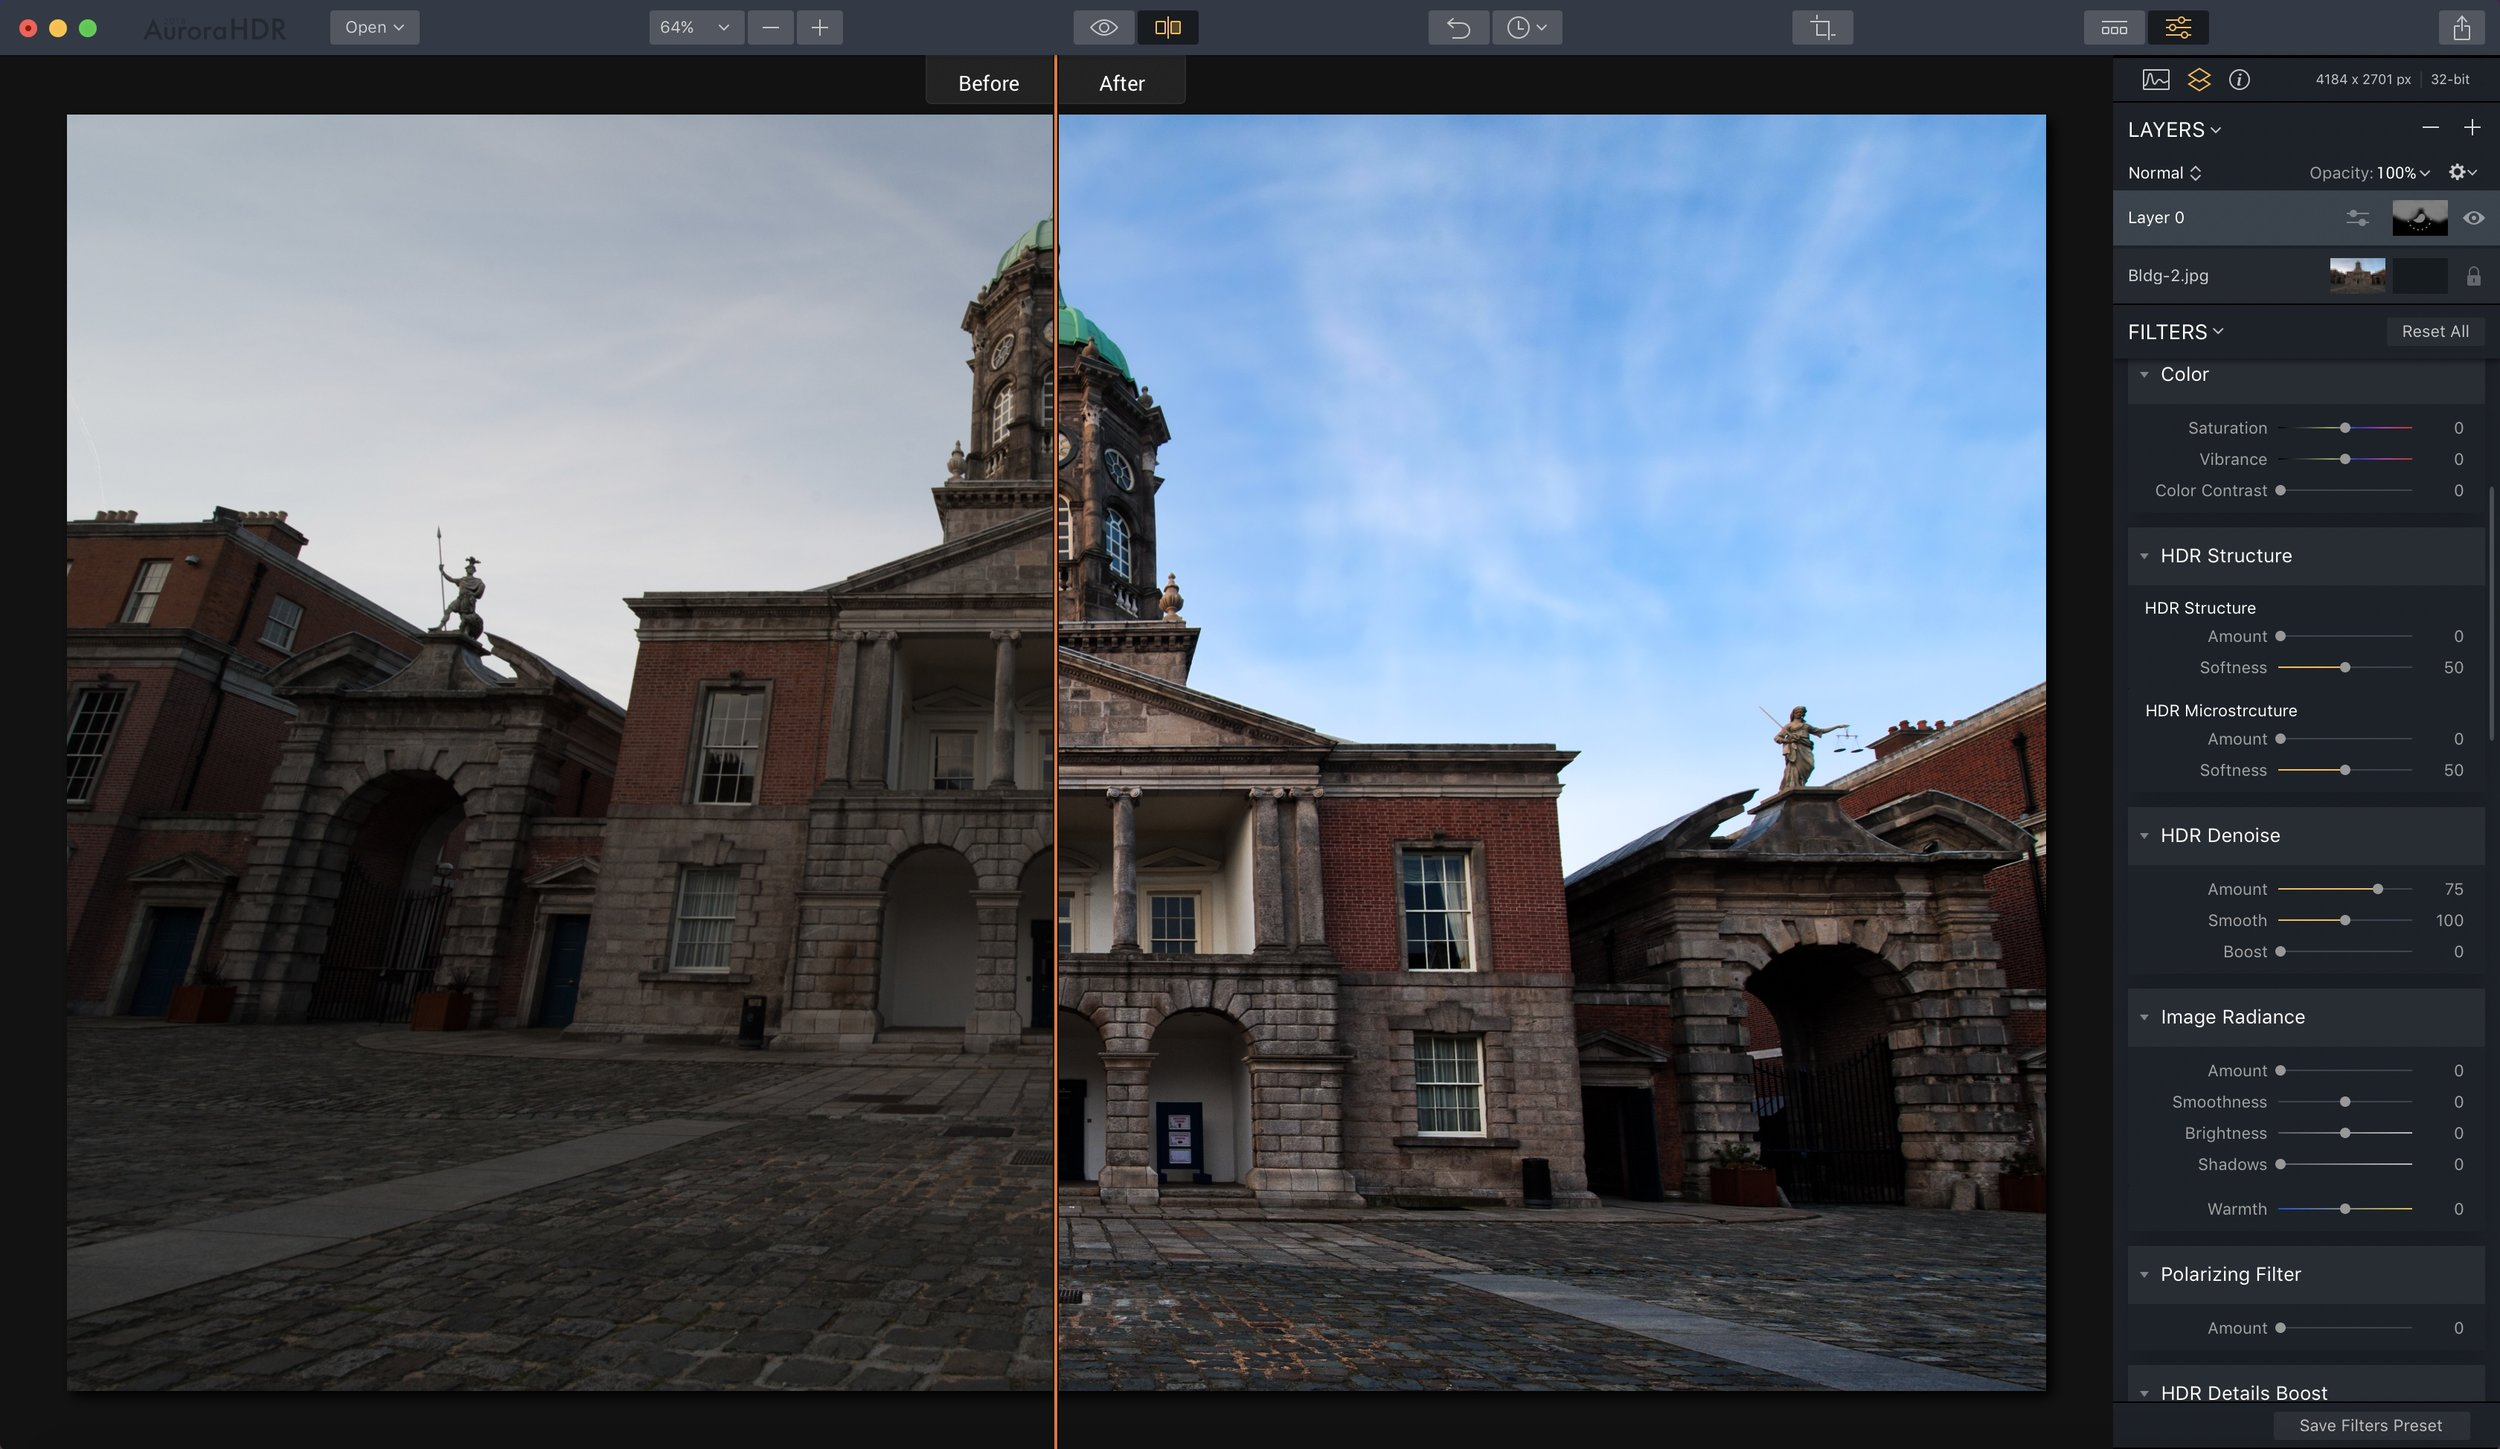 I know this split screen looks redonkulous, but I wanted to share it so you can see the dramatic difference you can make in a photo with the new Lens Correction and Transform tools (both of which were used here). I'll be back with more on those two tools really soon.